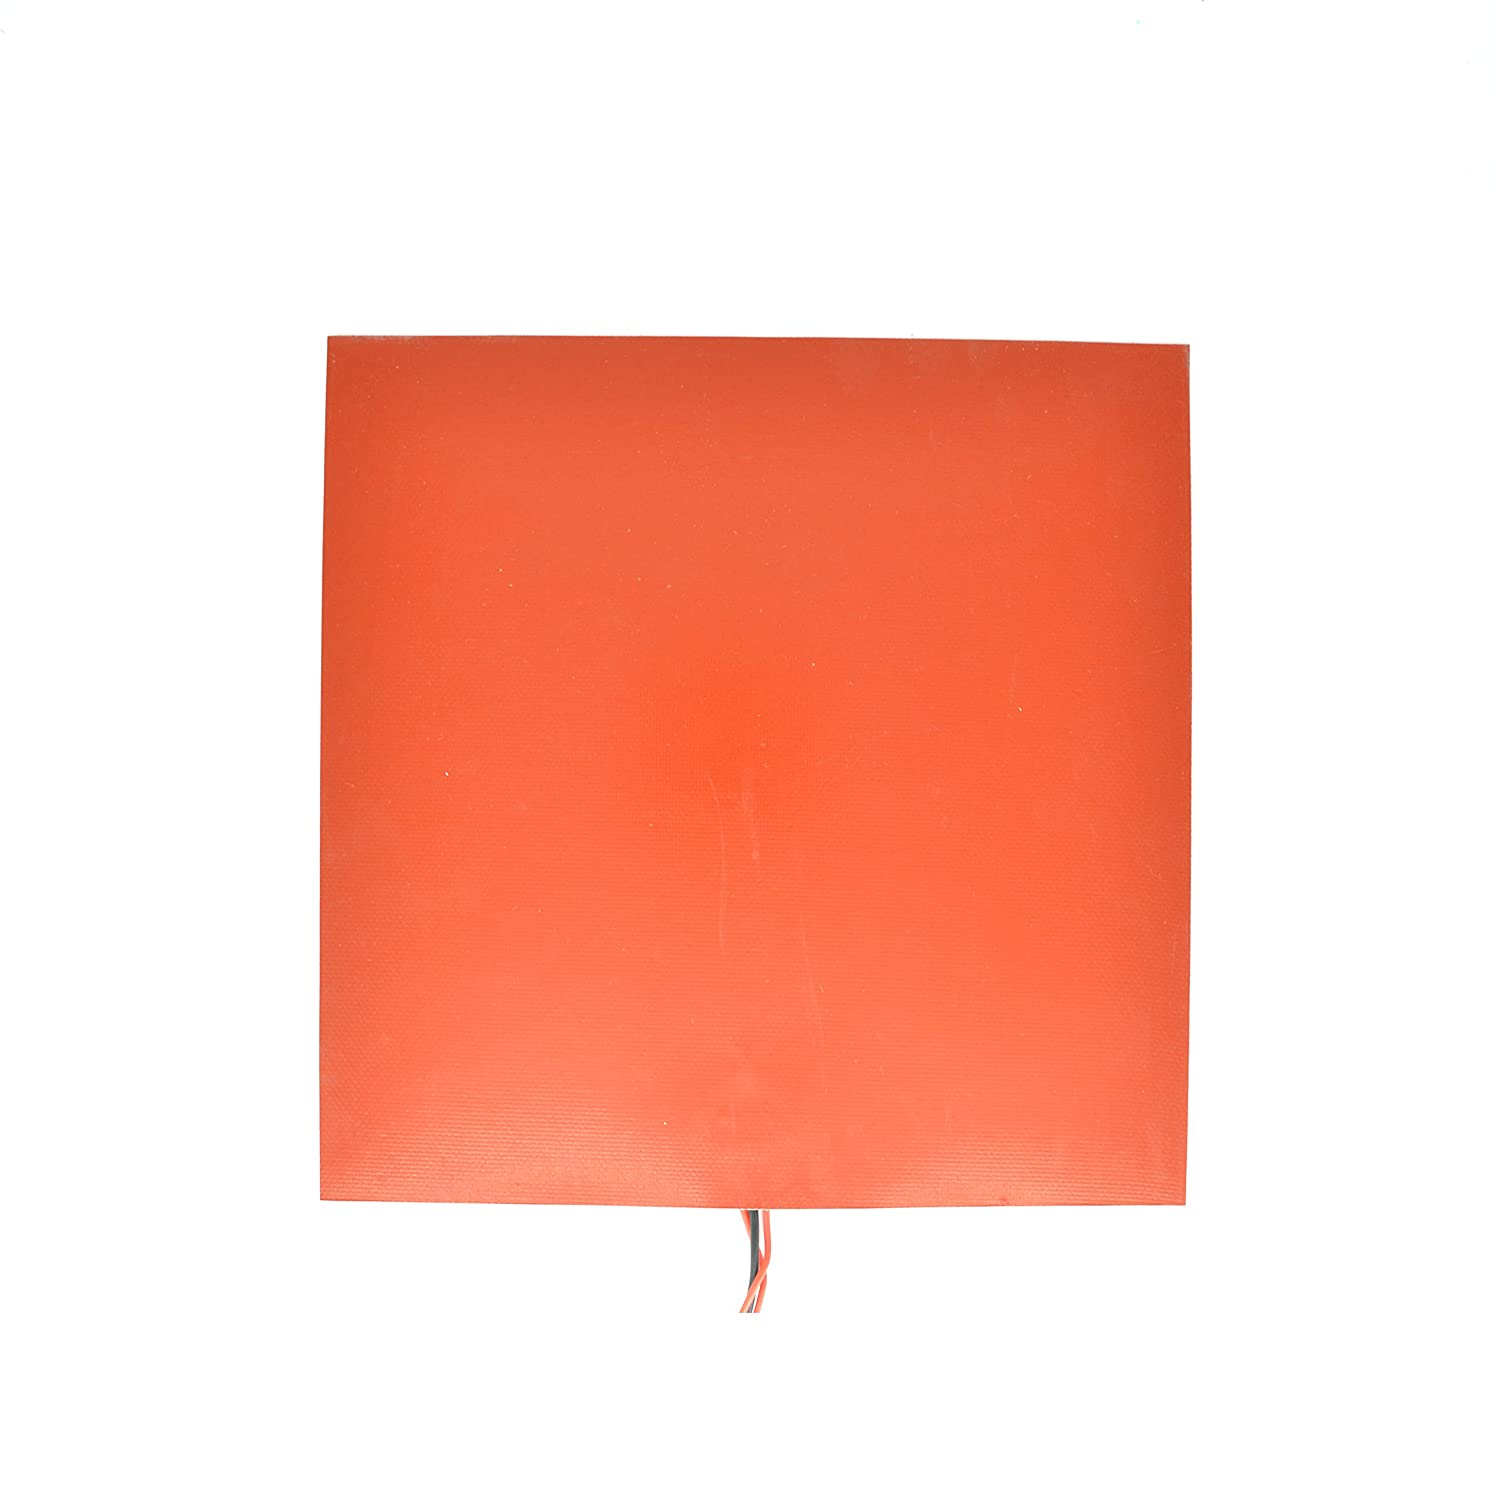 RobotDigg SRHT300SQ-220VAC Rubber Heater 300x300mm Flexible Heater Pad 220V 450W Silicone Heater Pad Mat for 3D Printer Use